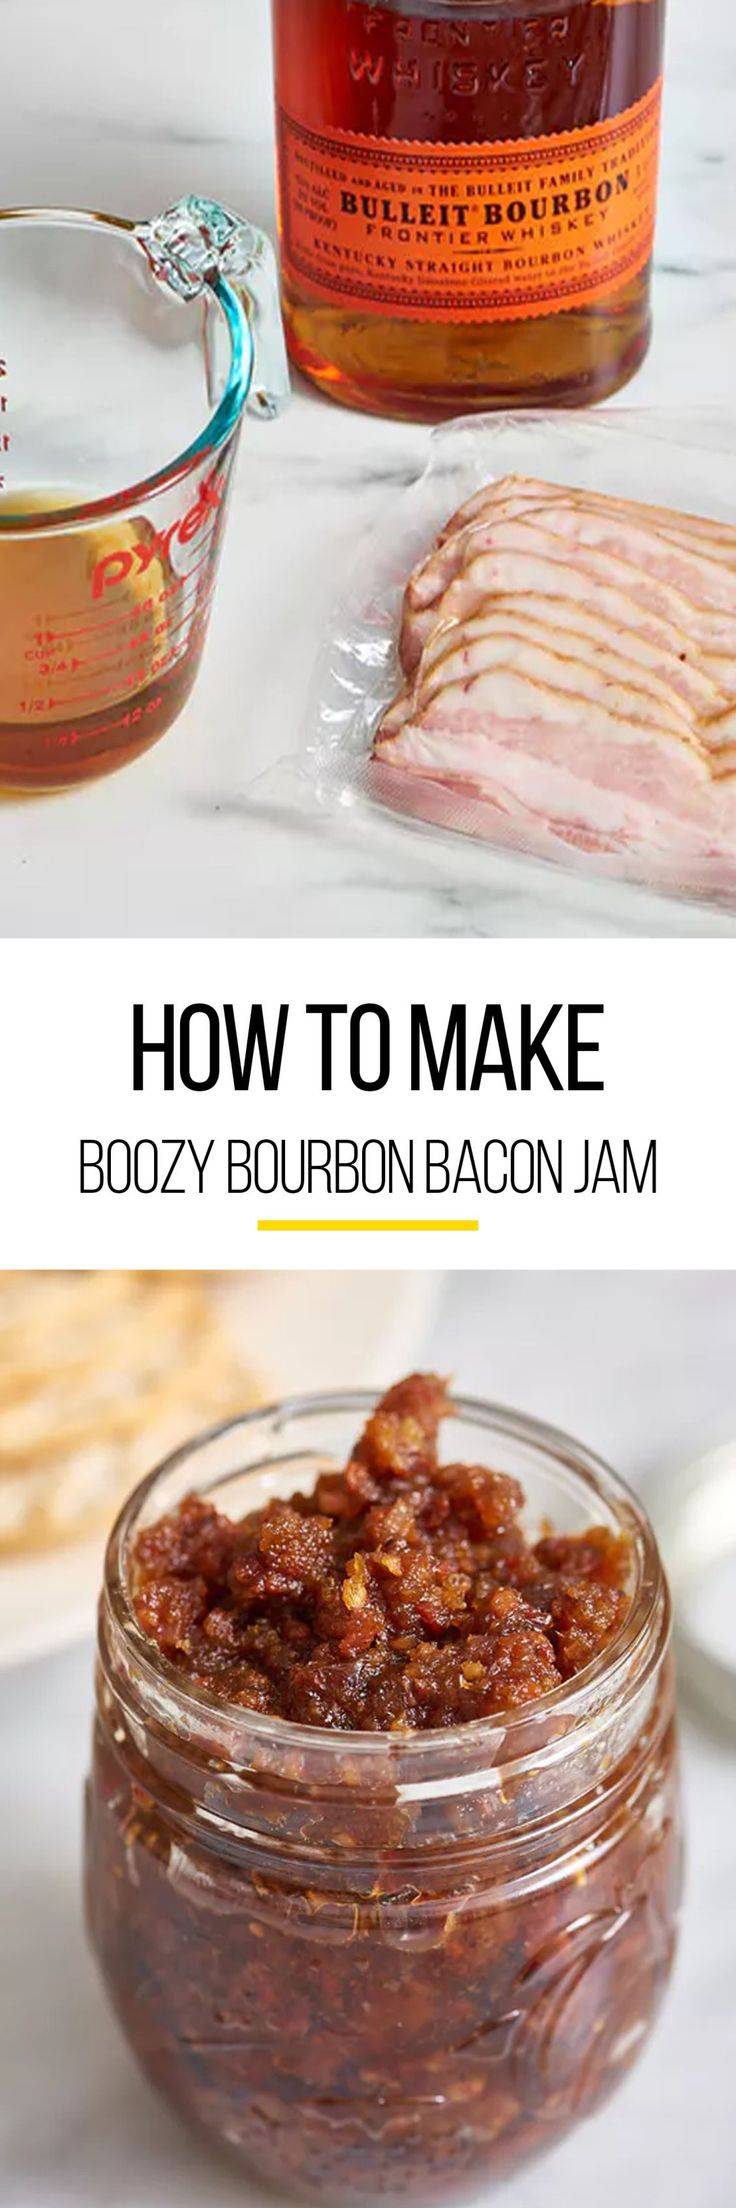 What's a holiday party without appetizers. Holidays means dips and spreads this Thanksgiving and Christmas. This easy bacon jam recipe is the best option if you're skipping out on your traditional holiday meals. This recipe calls for thick-cut bacon, sweet onion, bourbon, maple syrup, balsamic or sherry vinegar and freshly ground black pepper.